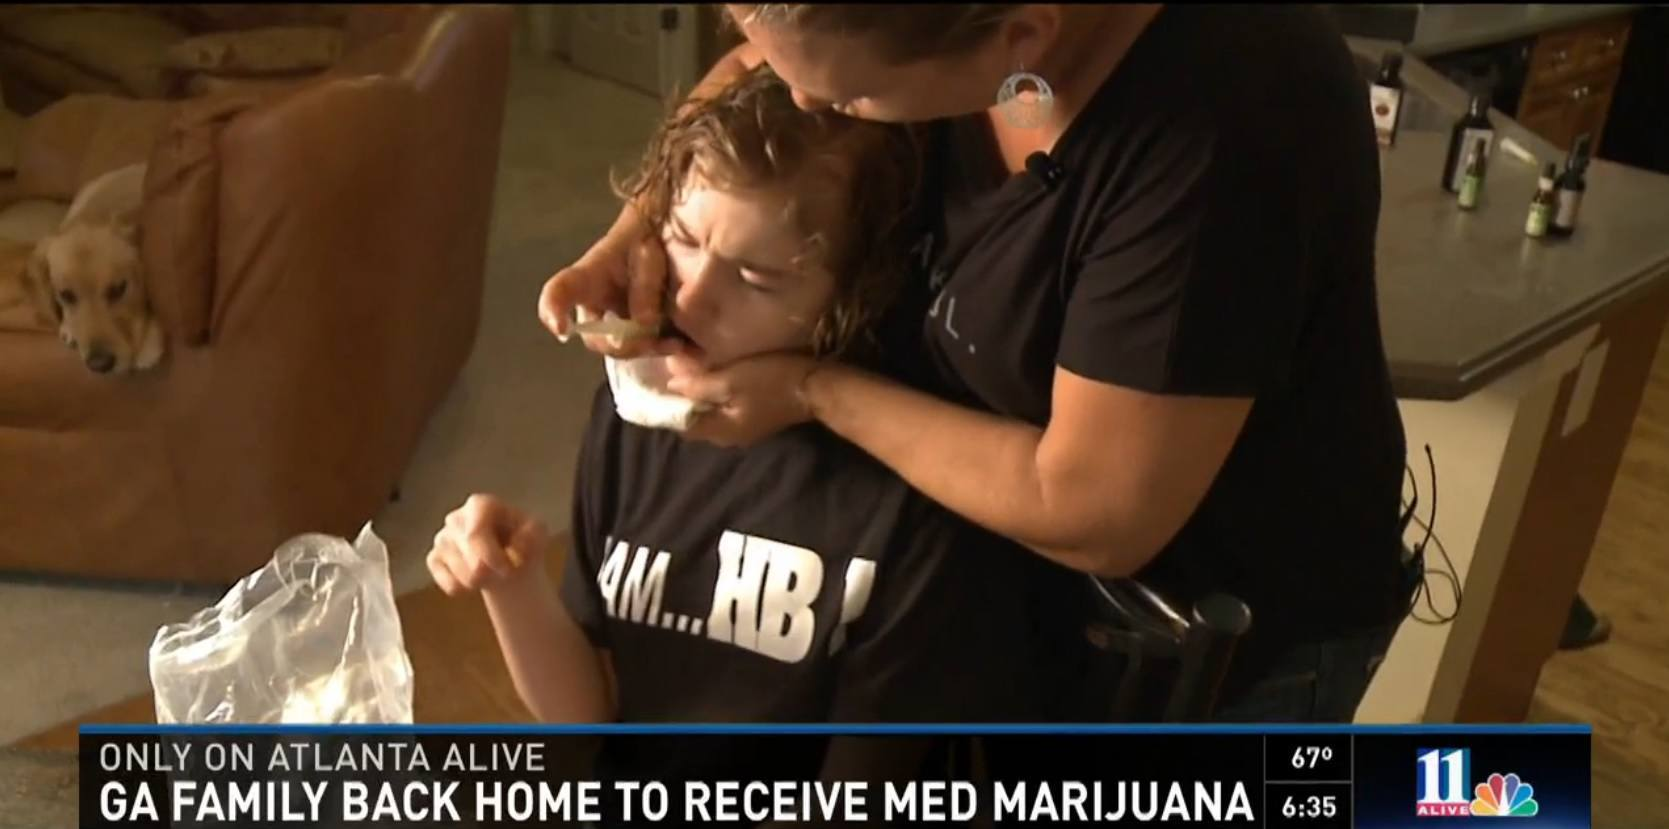 Image of Corey Lowe giving her daughter CBD Oil for her seizures